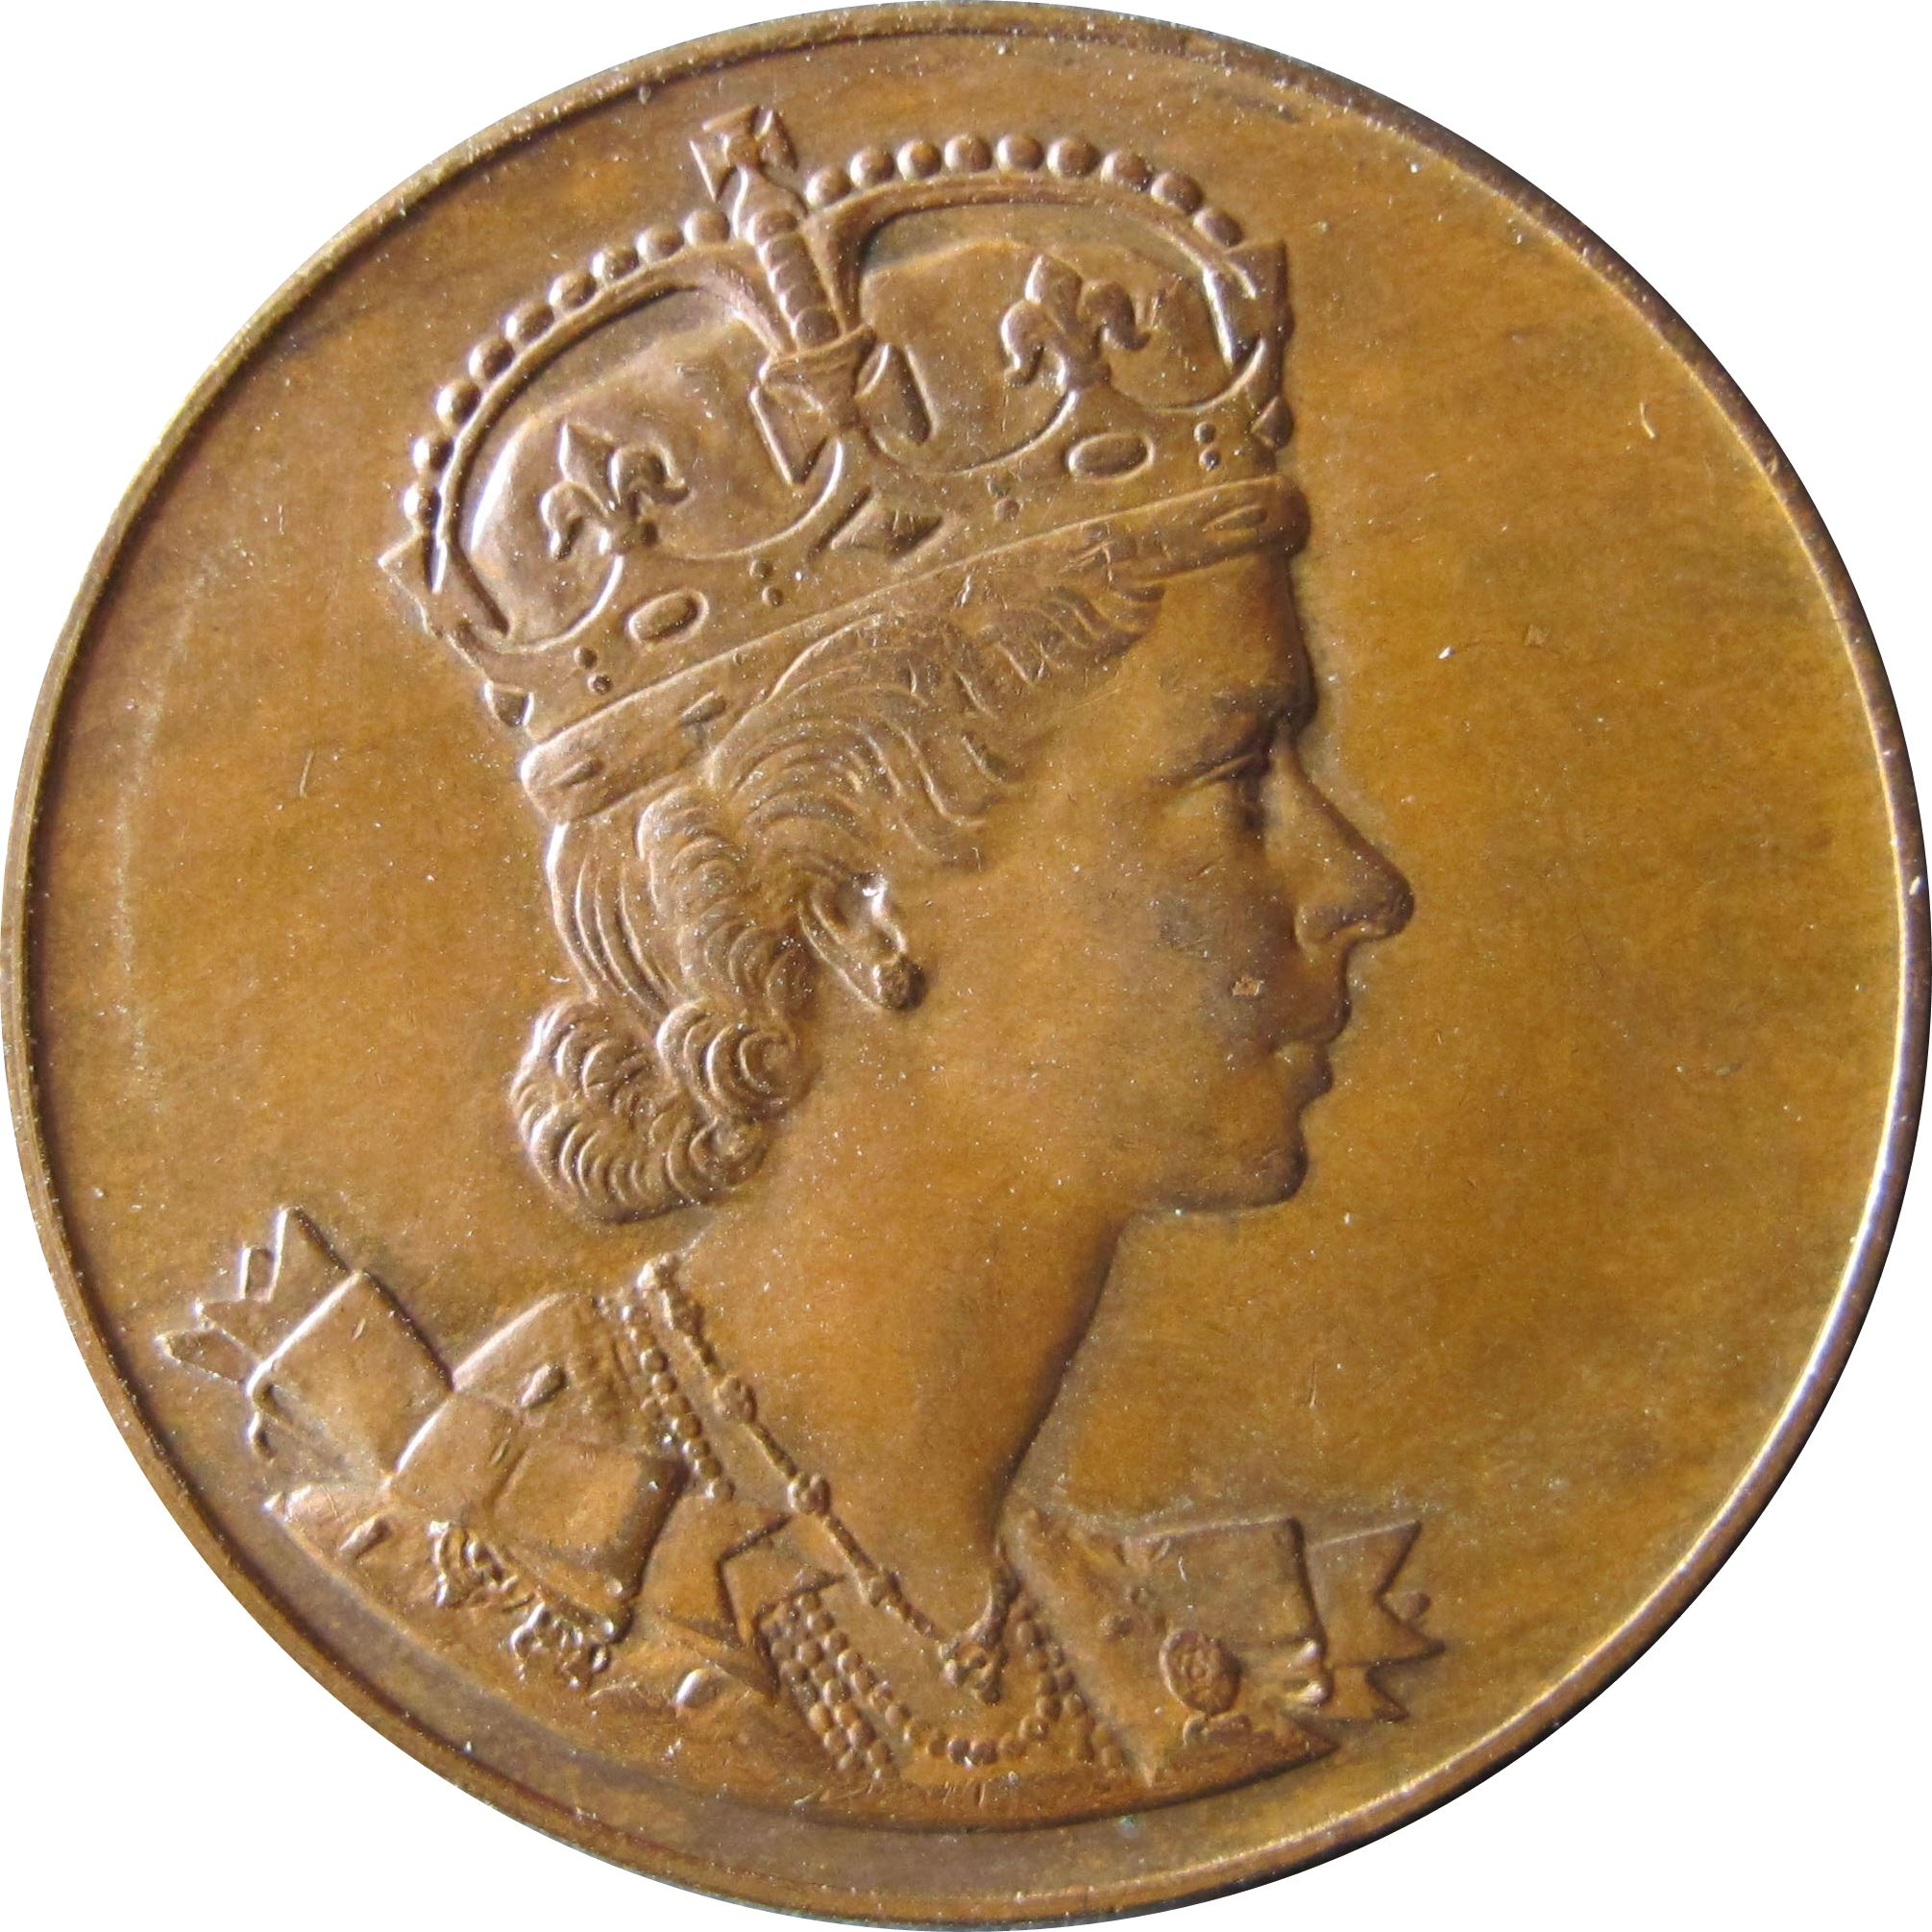 Cvc coin queens login - Account manager new york times salary